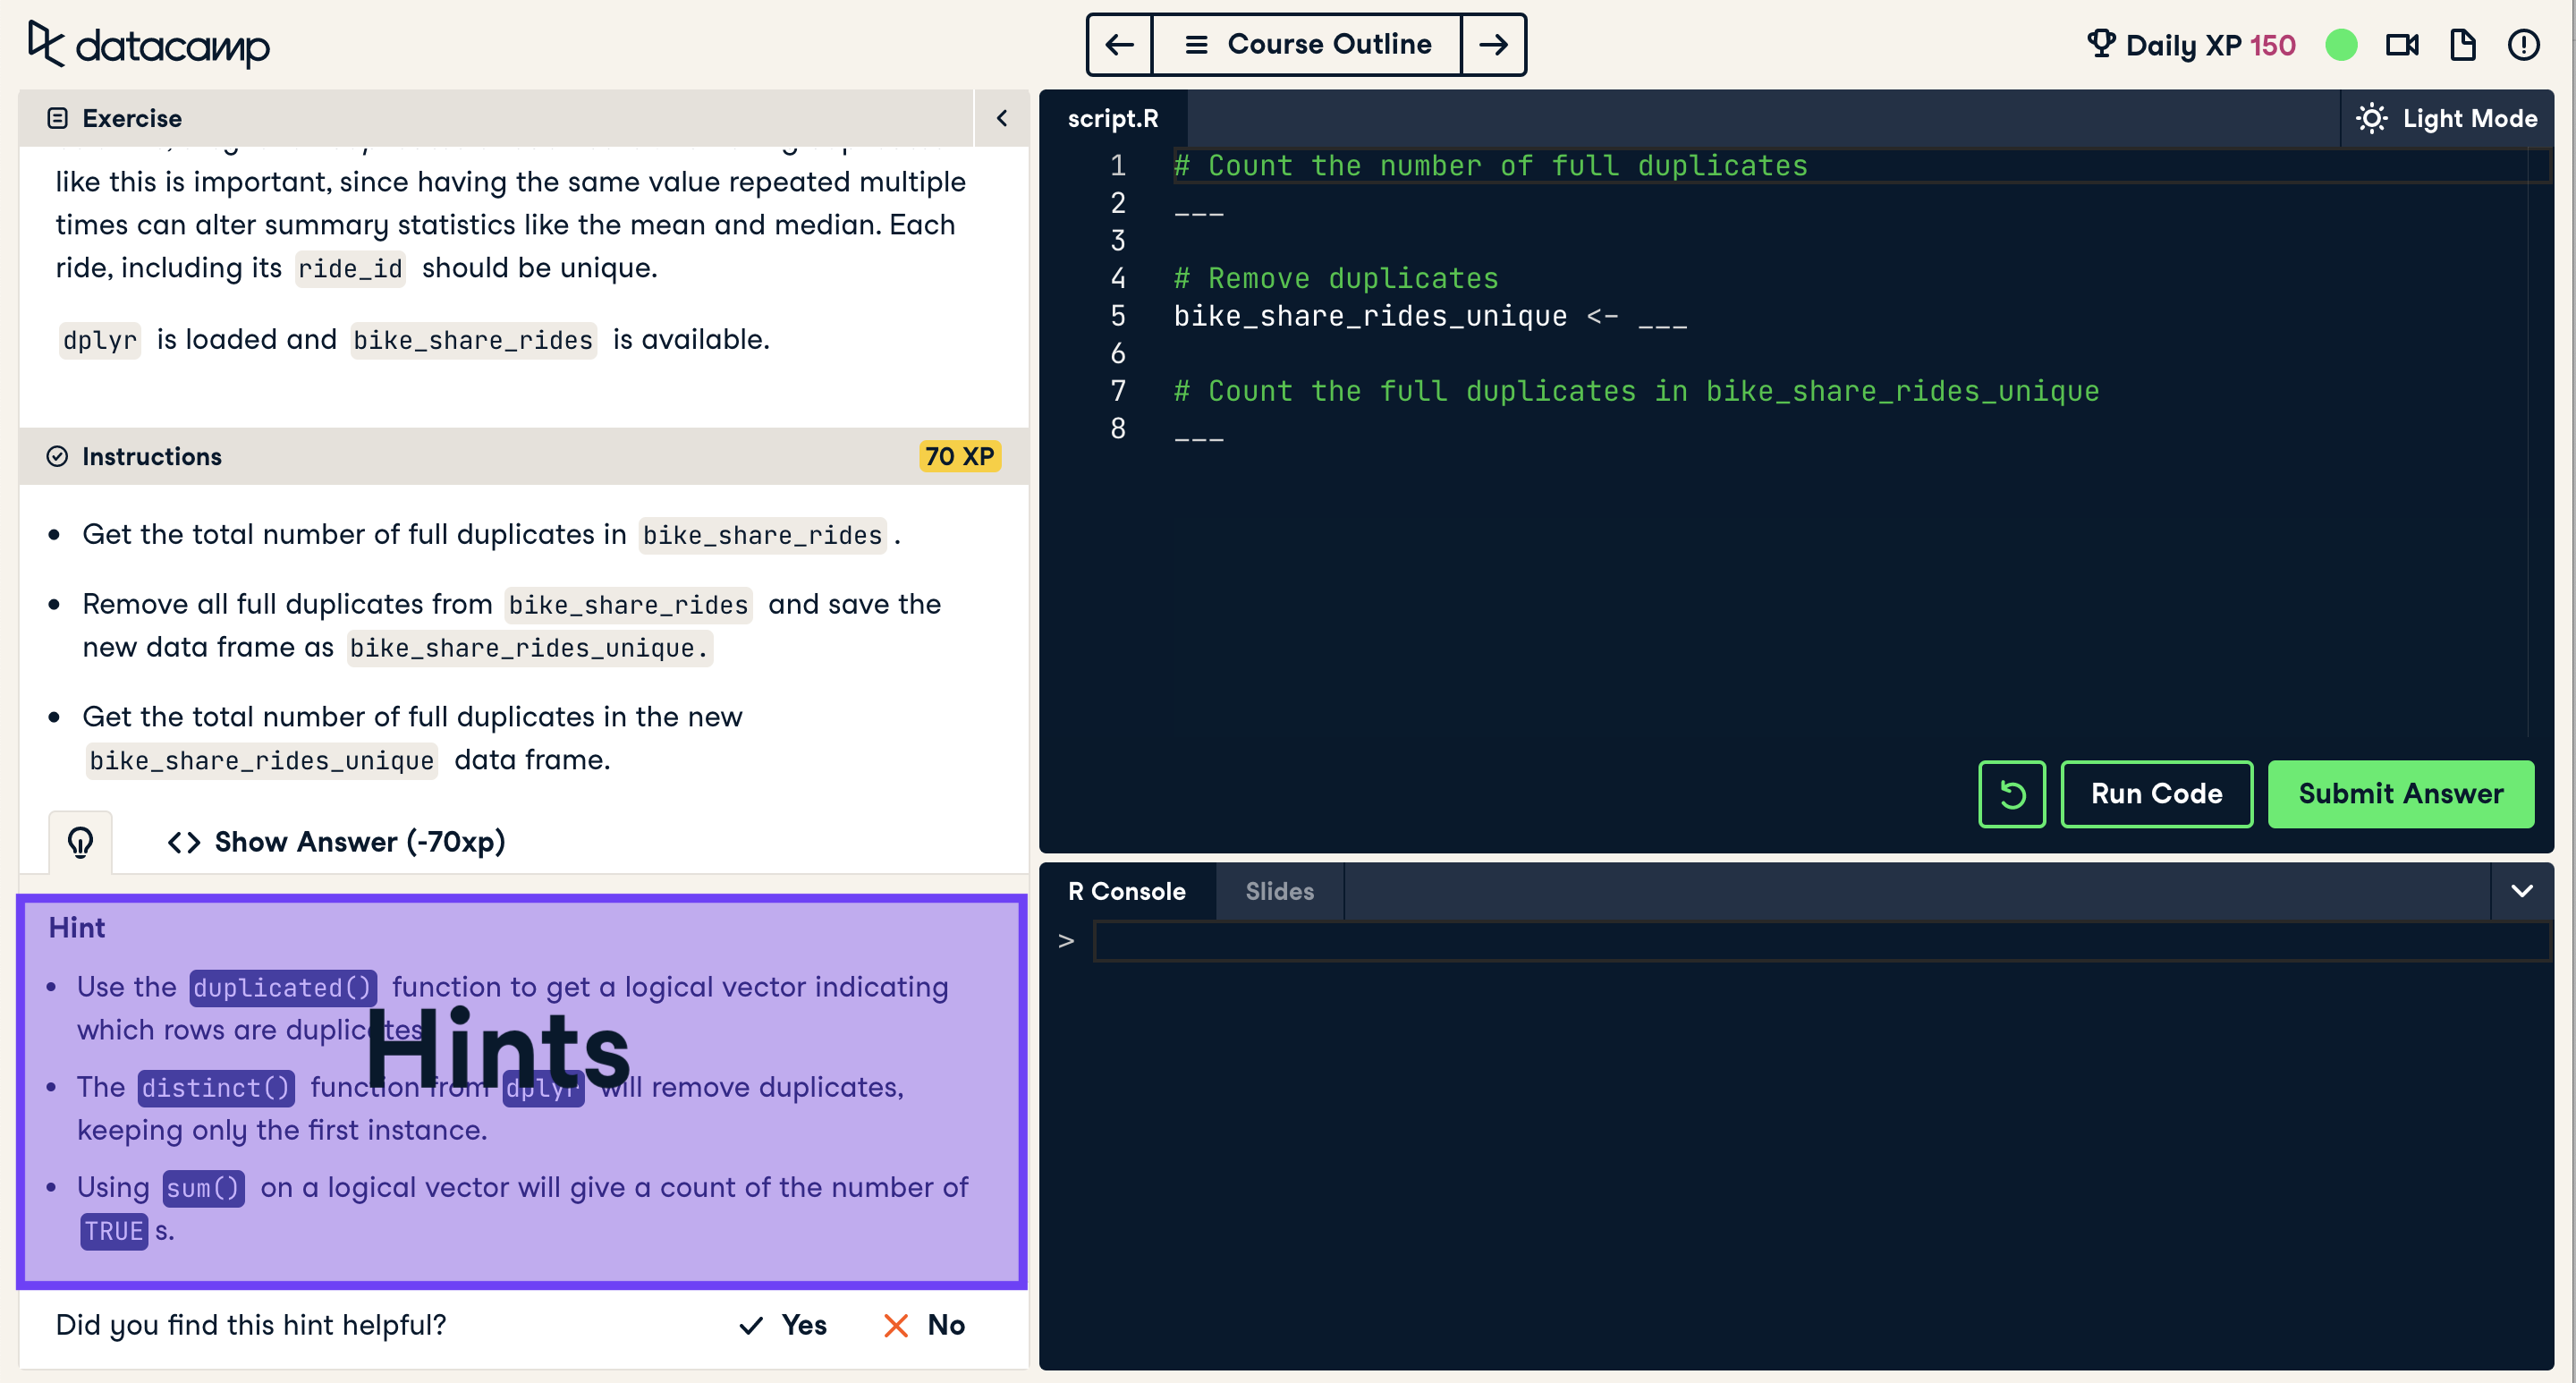 Screenshot of coding exercise with hints highlighted